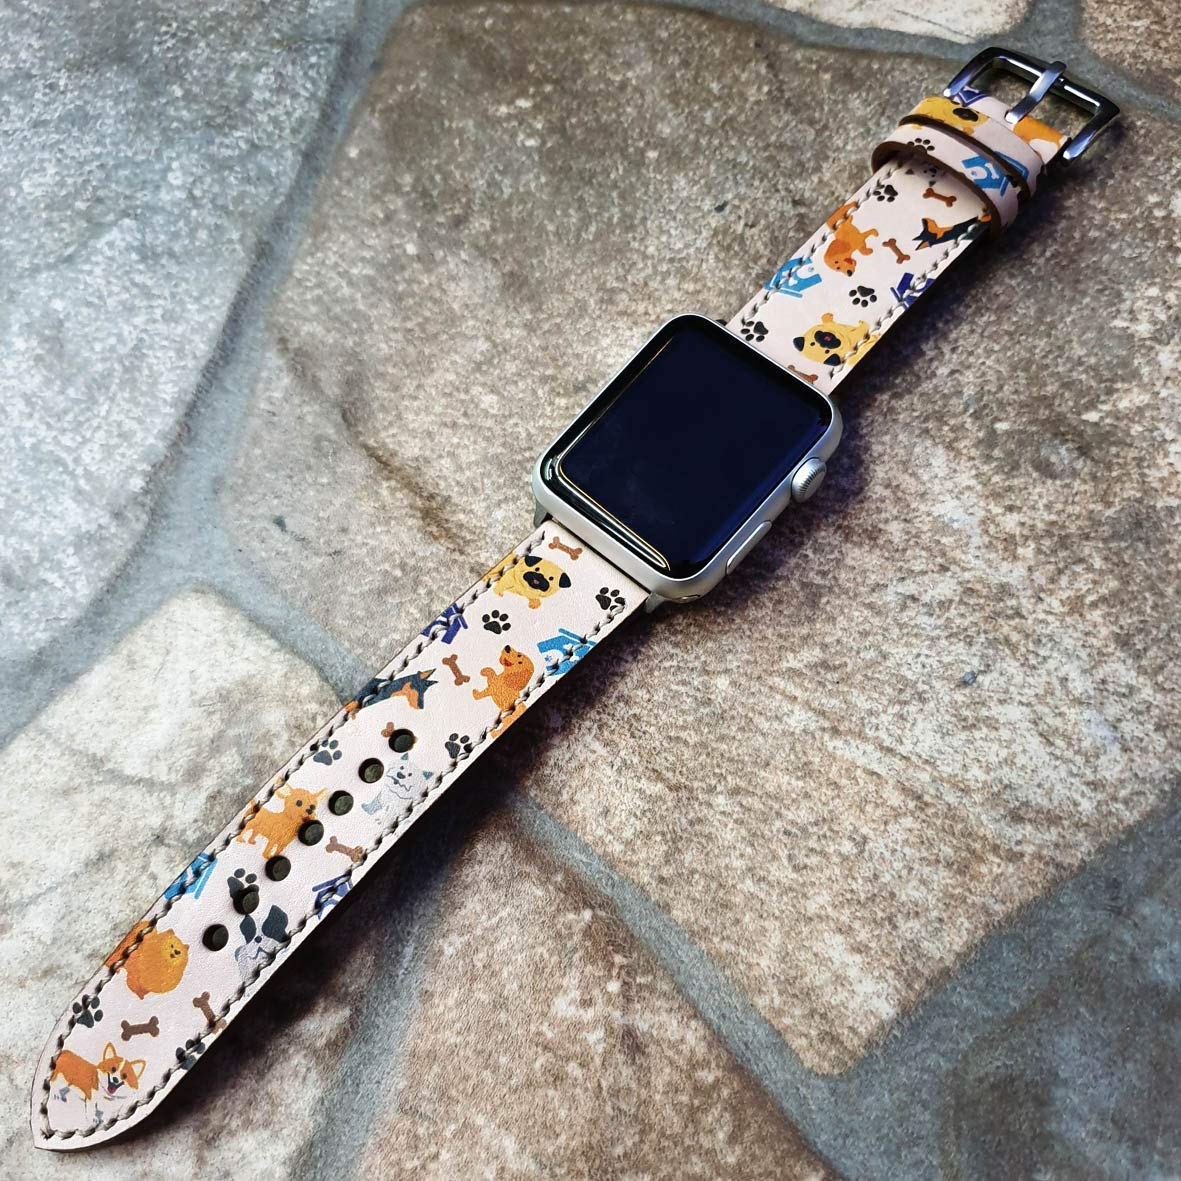 Animal Band Apple Watch Band 38mm 40mm 42mm 44mm,Series 5 Series 4 Series 3 Series 2 Series 1,Hand-Stitched Handmade Apple Watch Leather